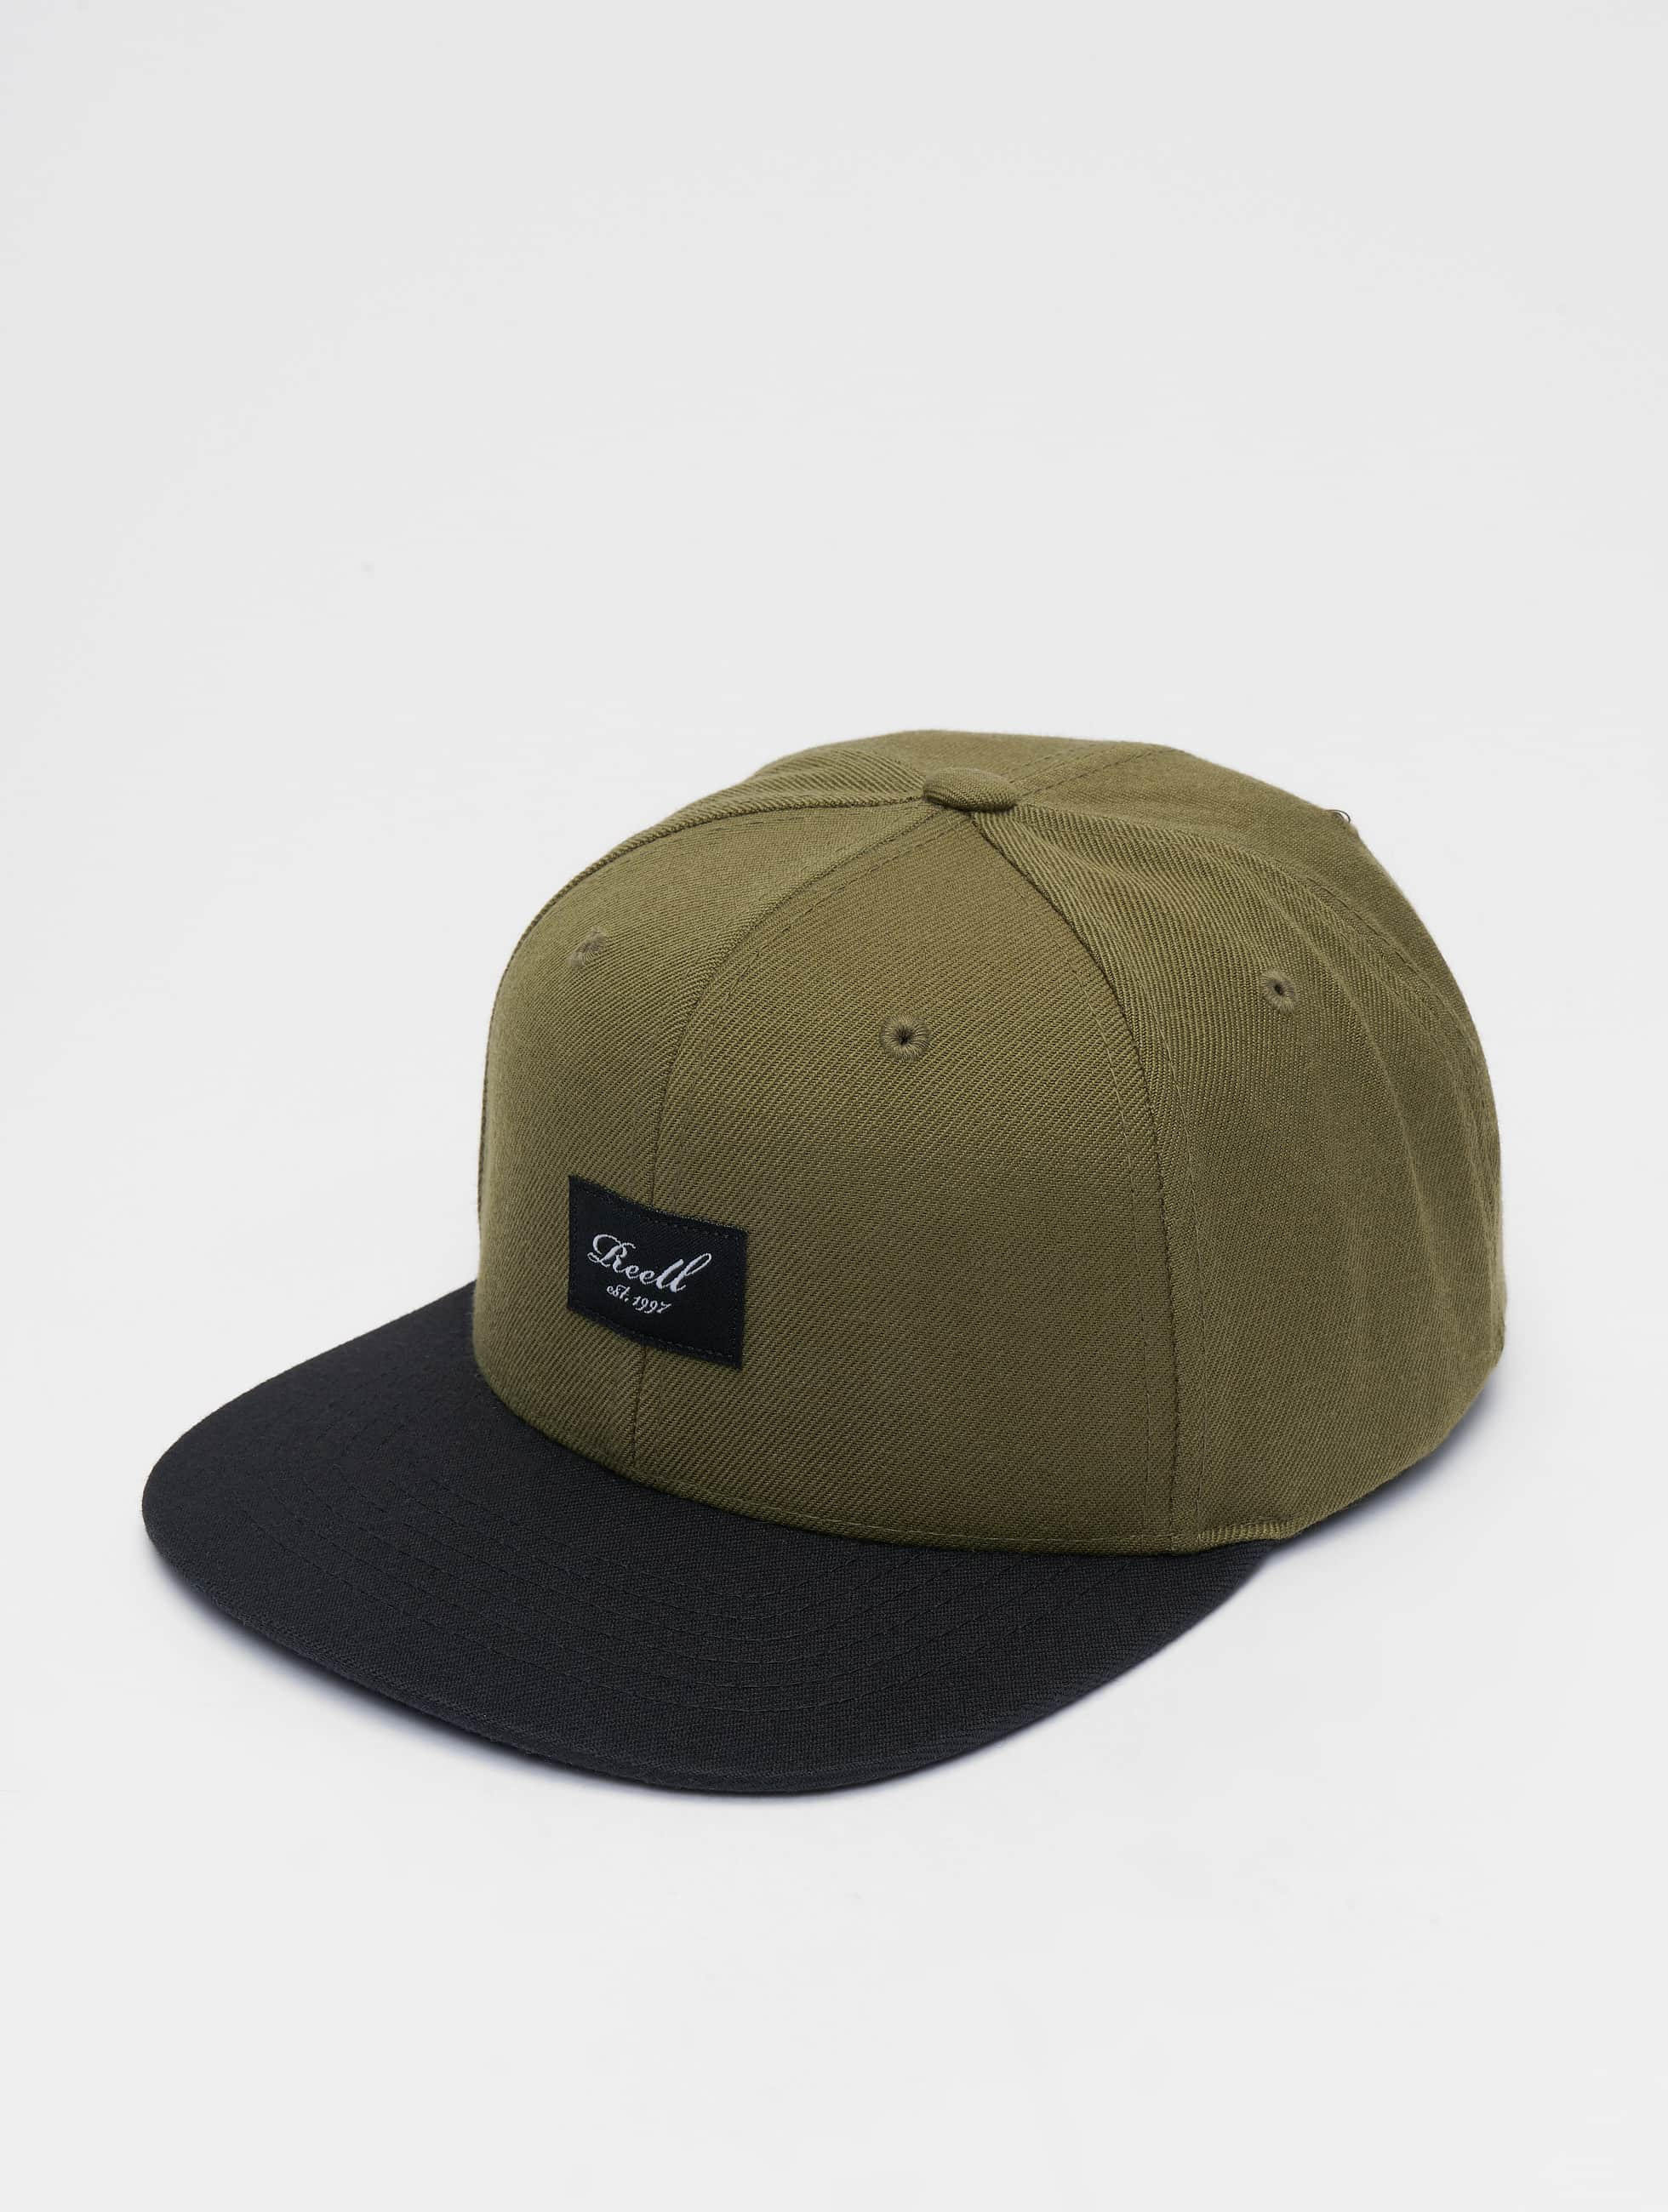 Reell Jeans | Pitchout 6 Panel  olive Homme,Femme Casquette Snapback & Strapback